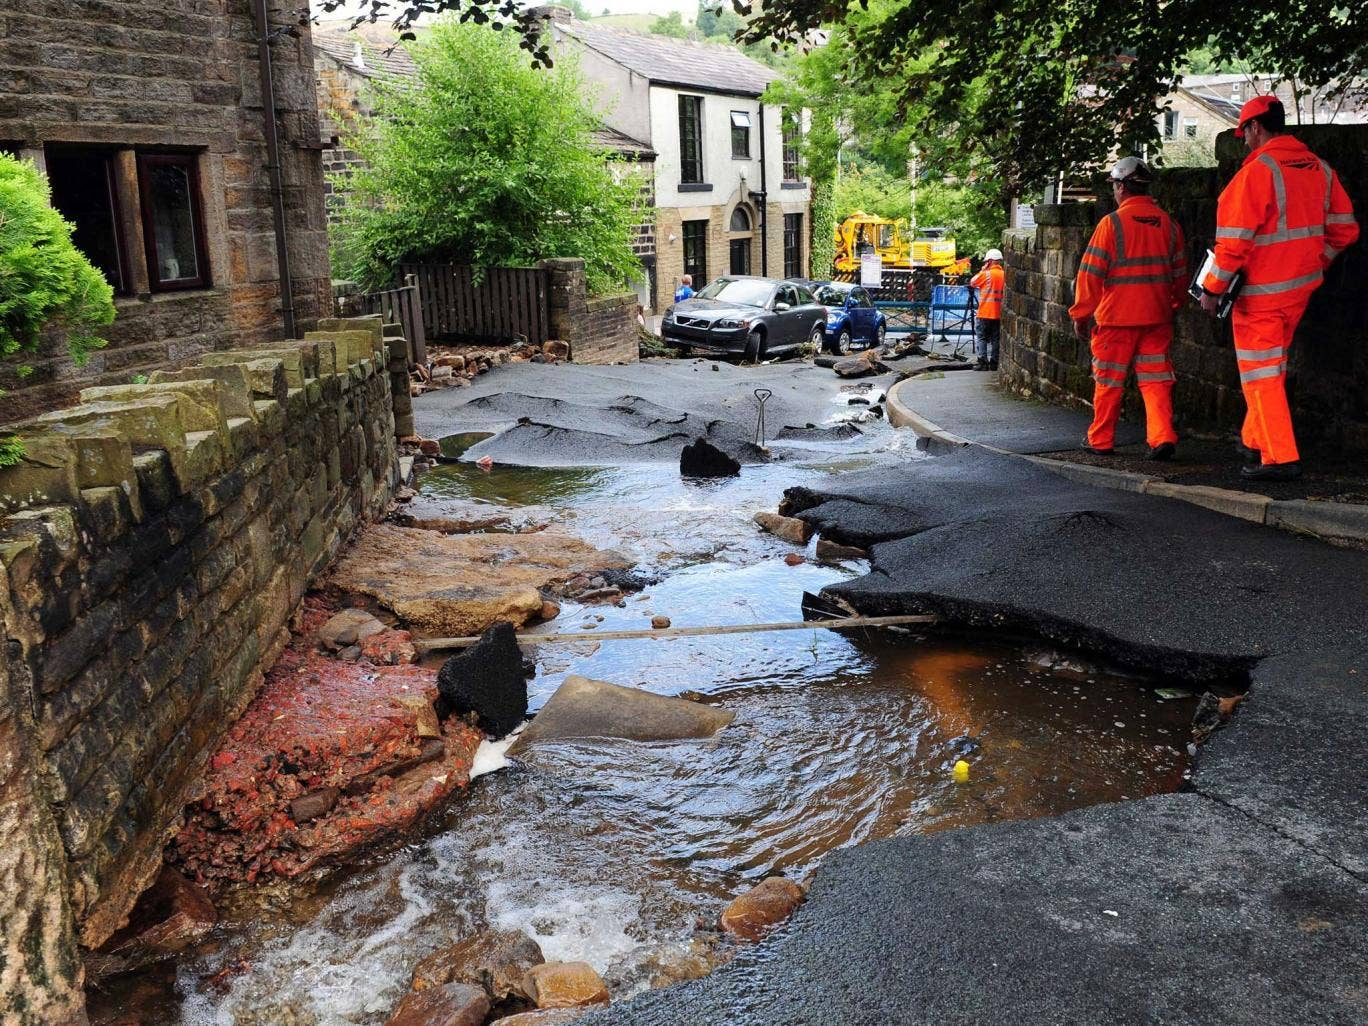 Engineers examine the damage left by flash floods in Walsden, near Todmorden